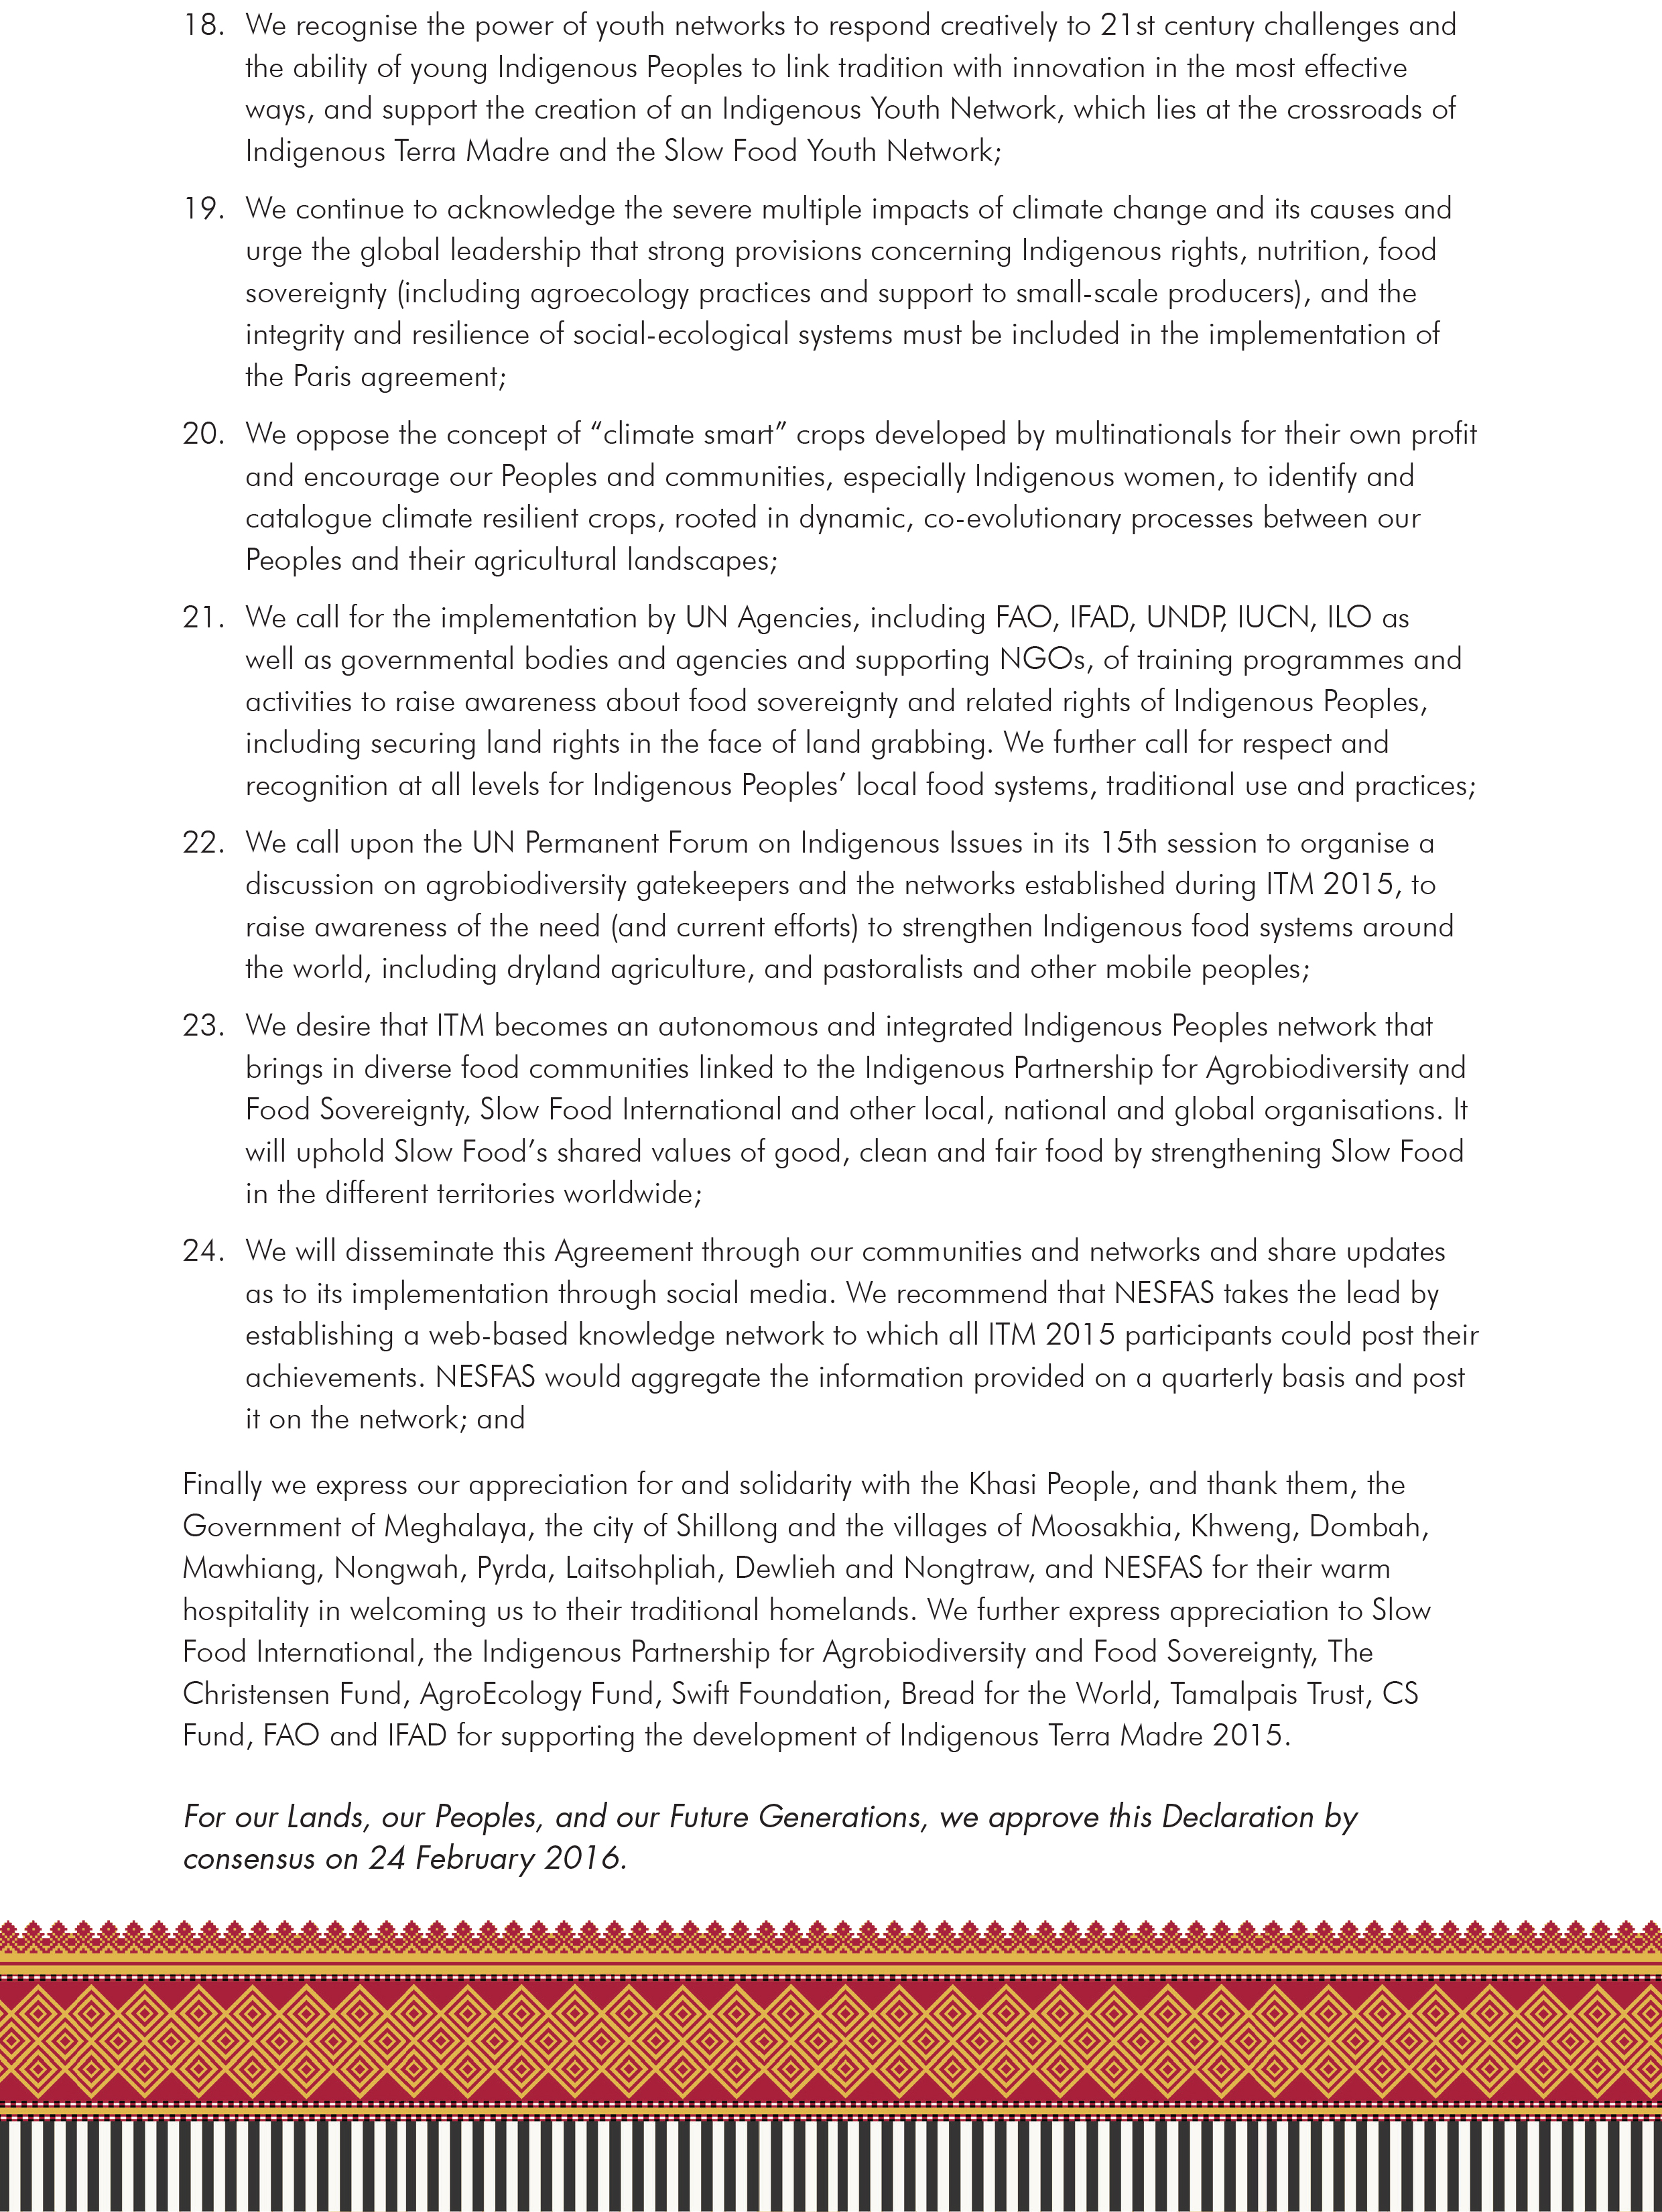 4 THE SHILLONG DECLARATION_English_7 March 2016-4